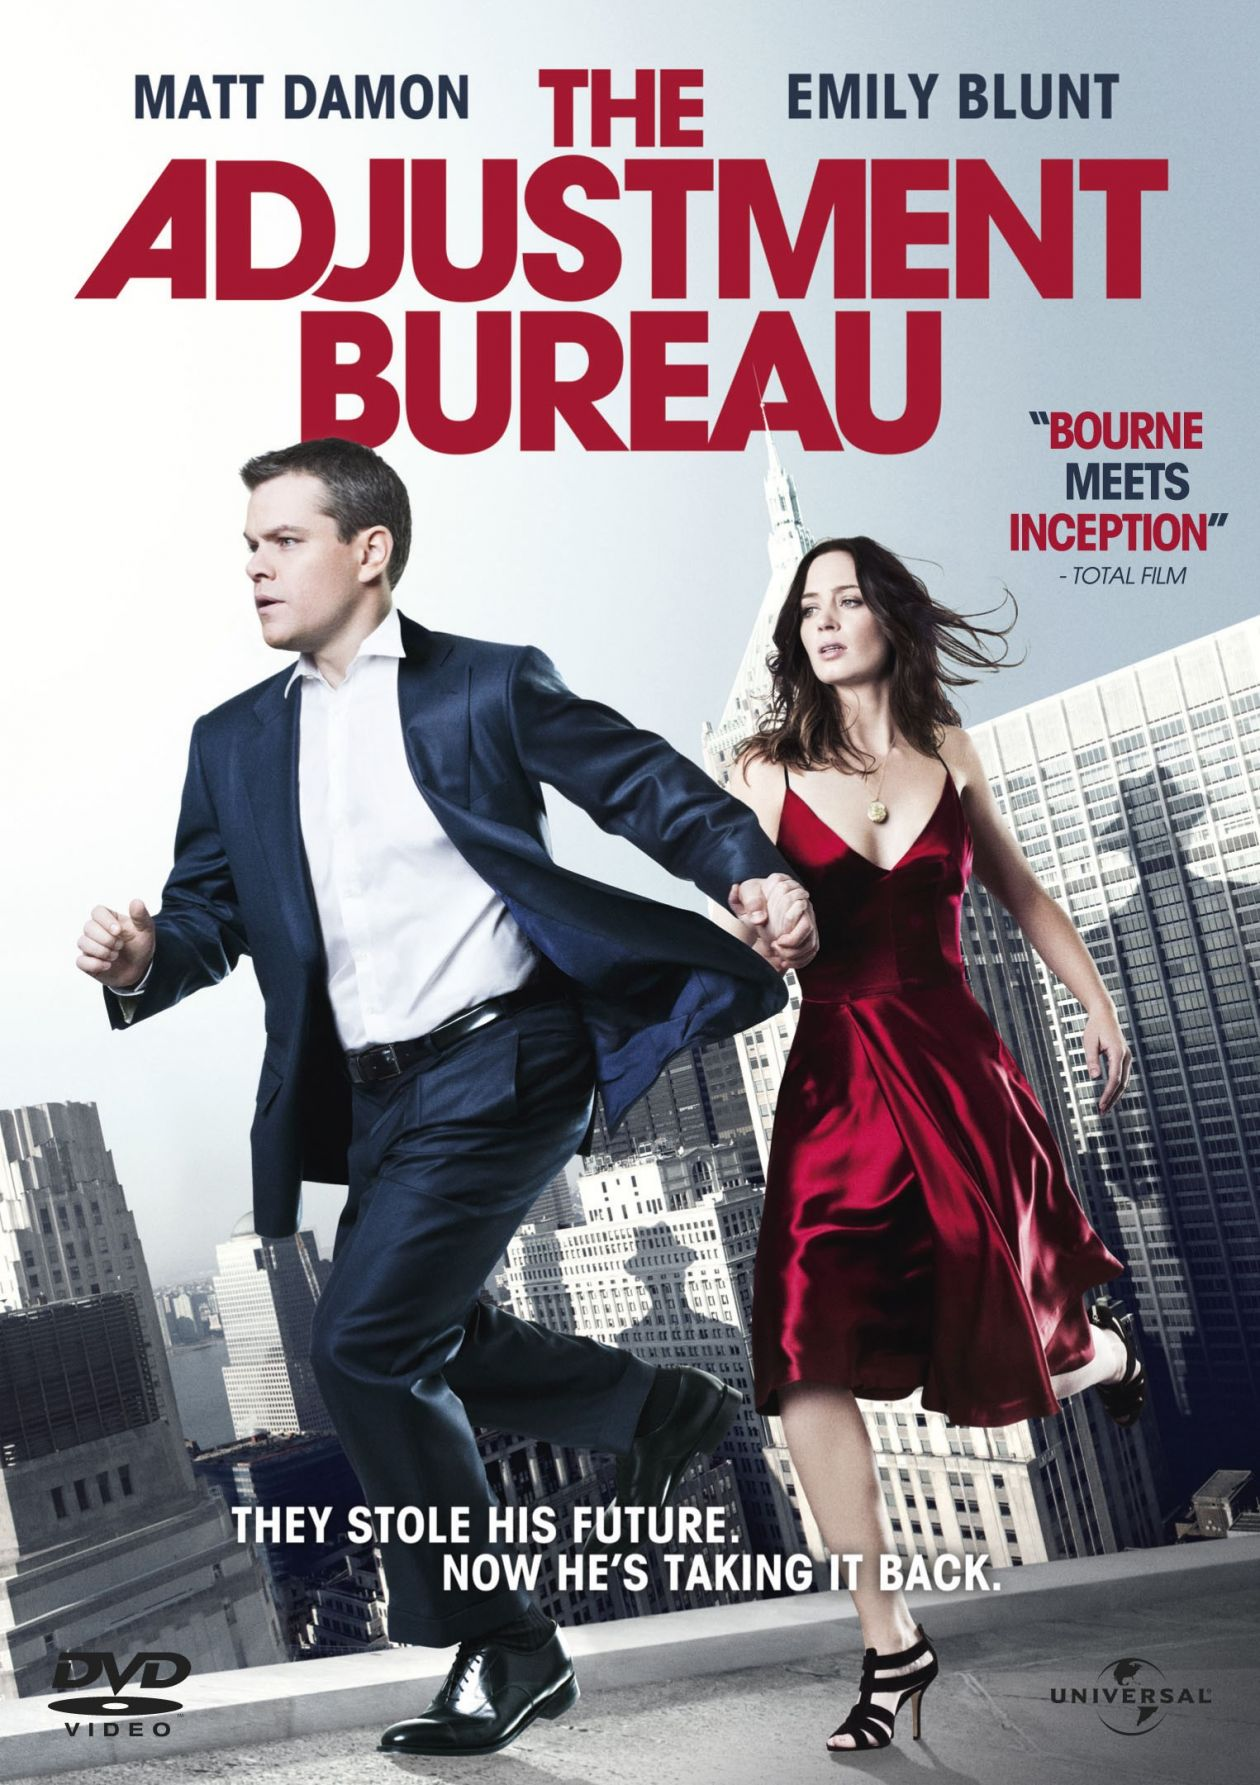 Emily Blunt actress / The Adjustment Bureau / L'Agence / George Nolfi 2011 / Movie Poster / Affiche de film